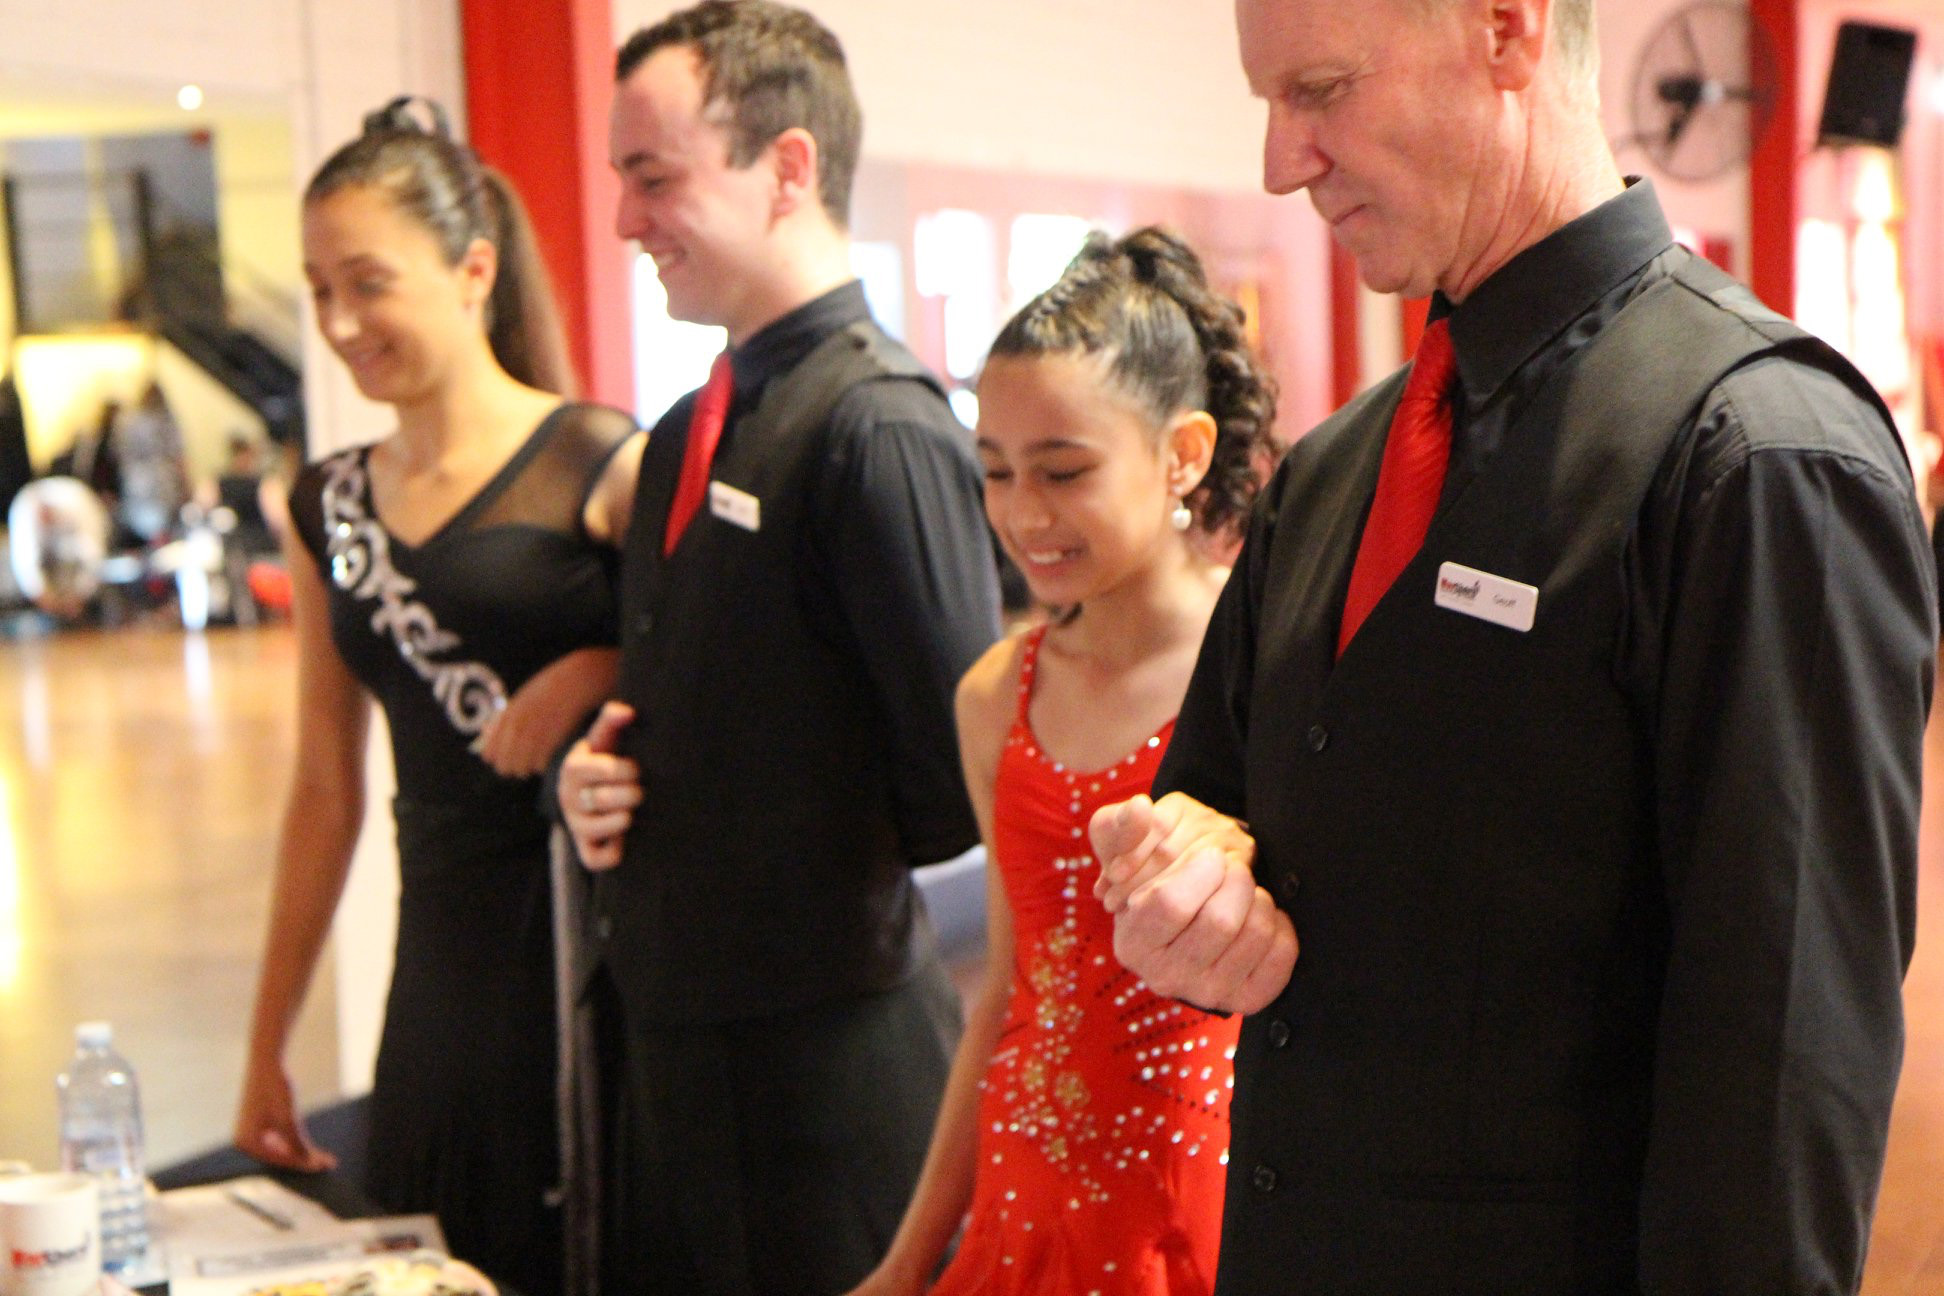 Students meeting the judges for their Ballroom Dancing awards